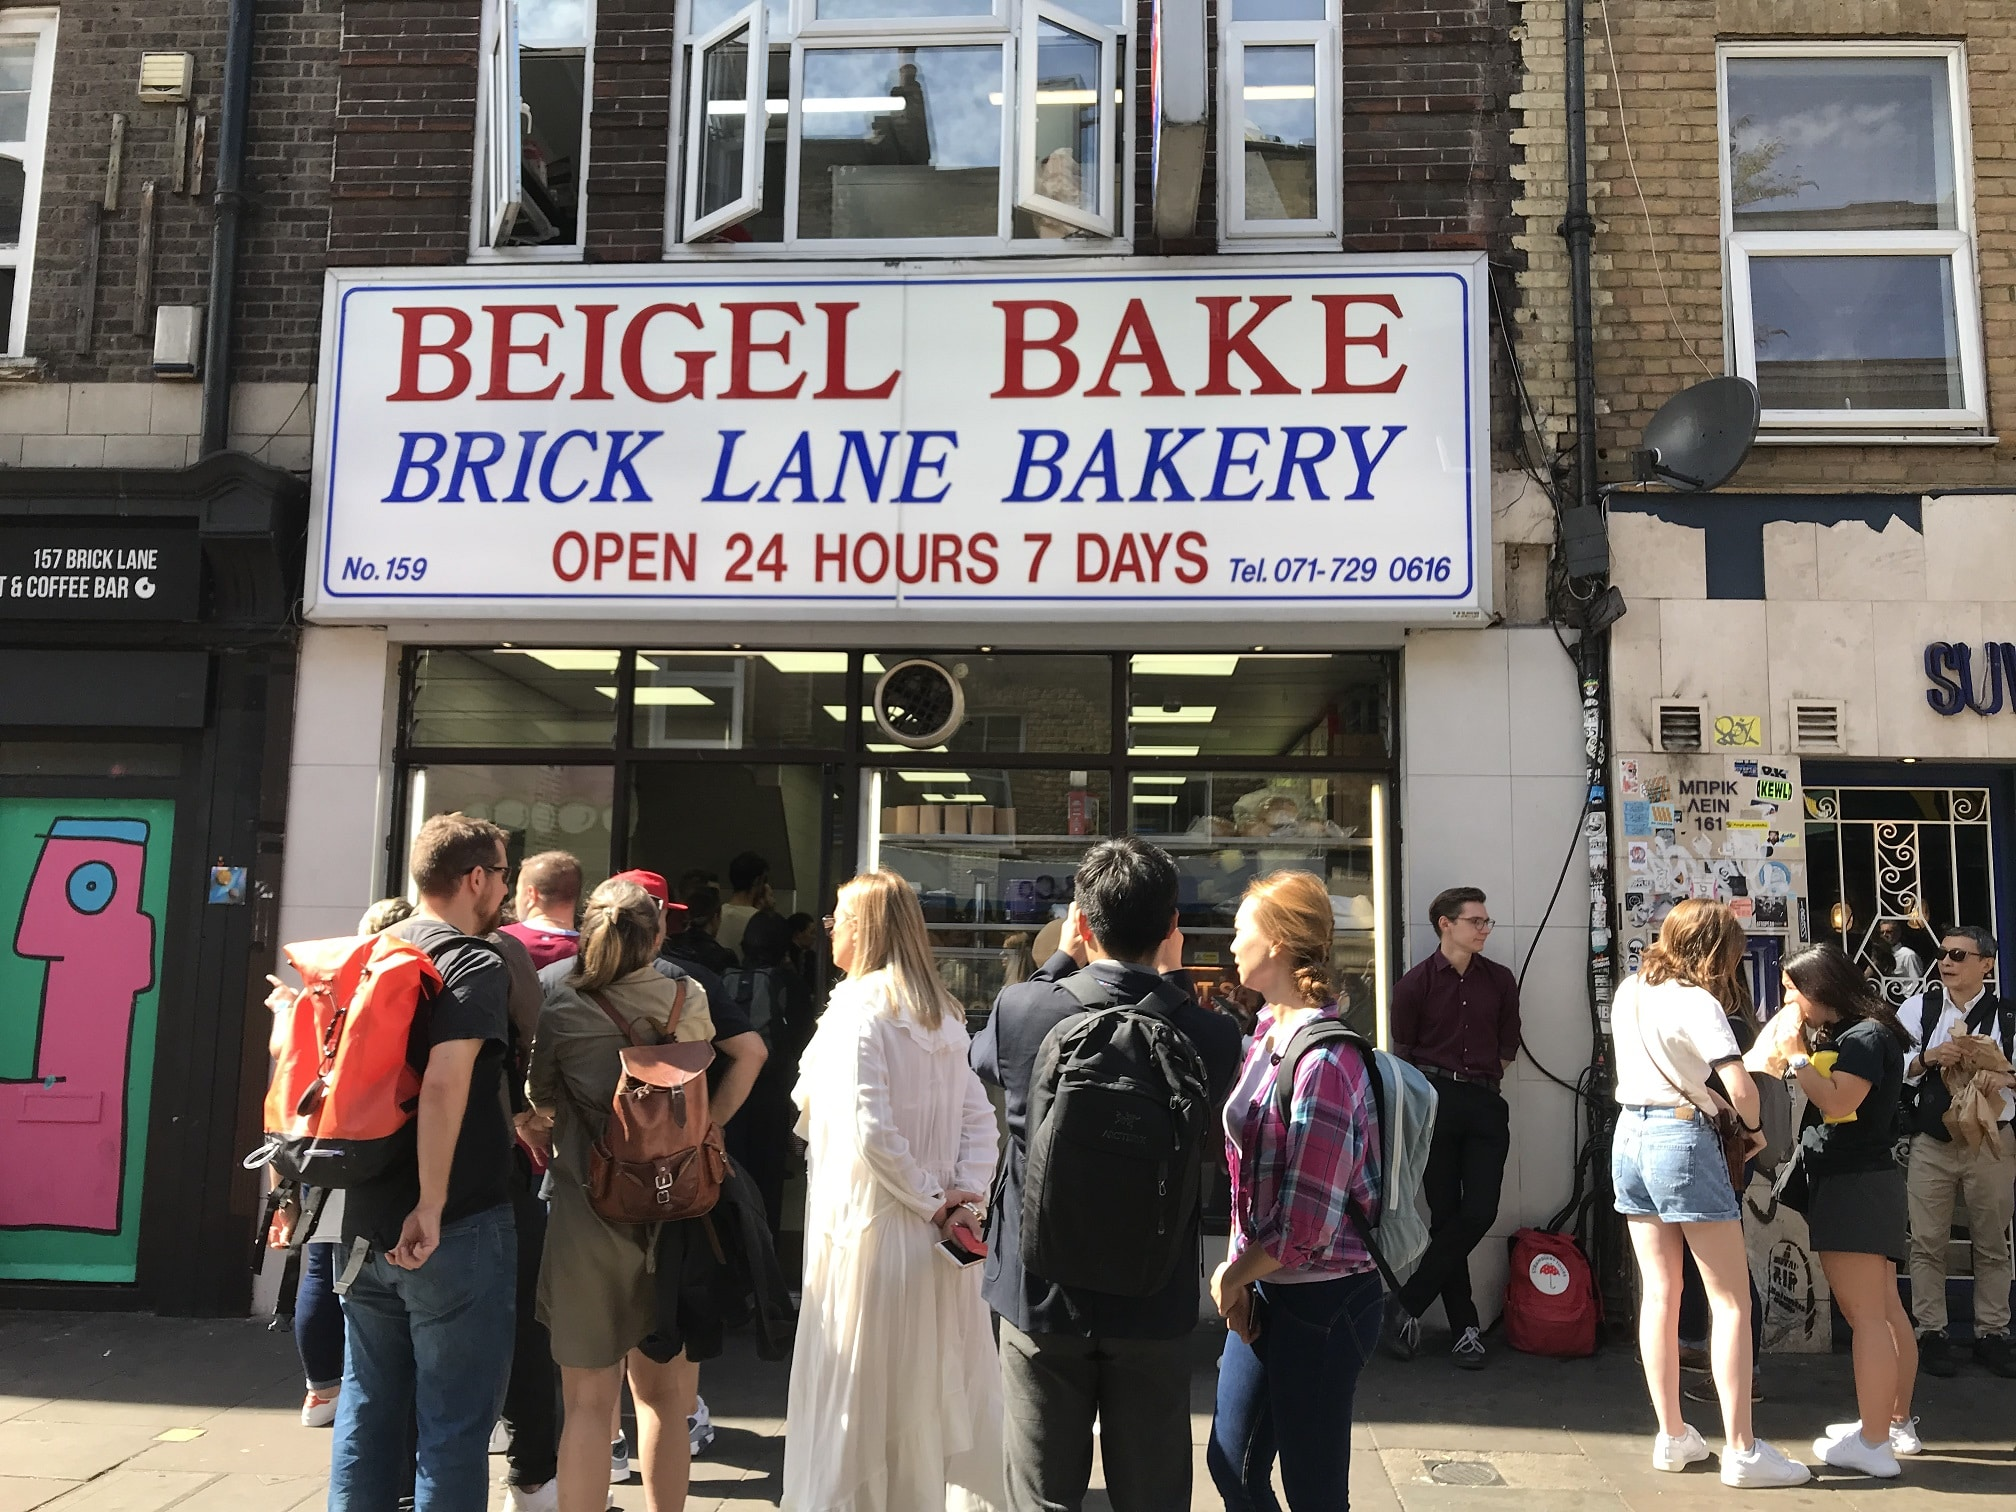 Beigel Bake is Brick Lane's 24-hour beigel bakery